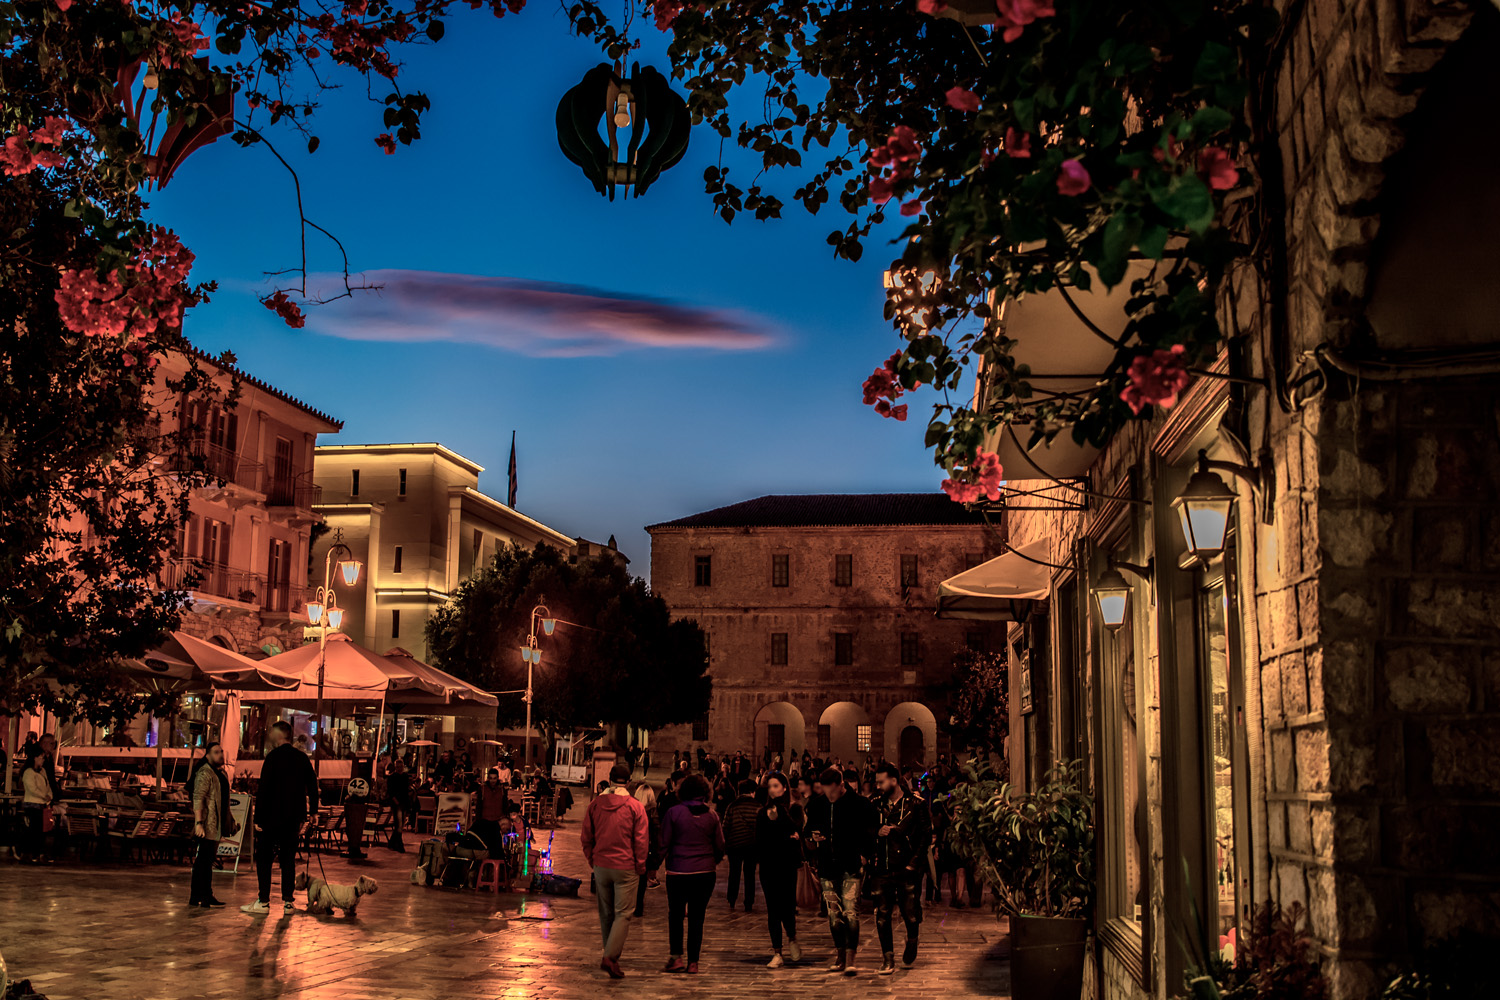 Sunset at Nafplio central square, Peloponnese Greece